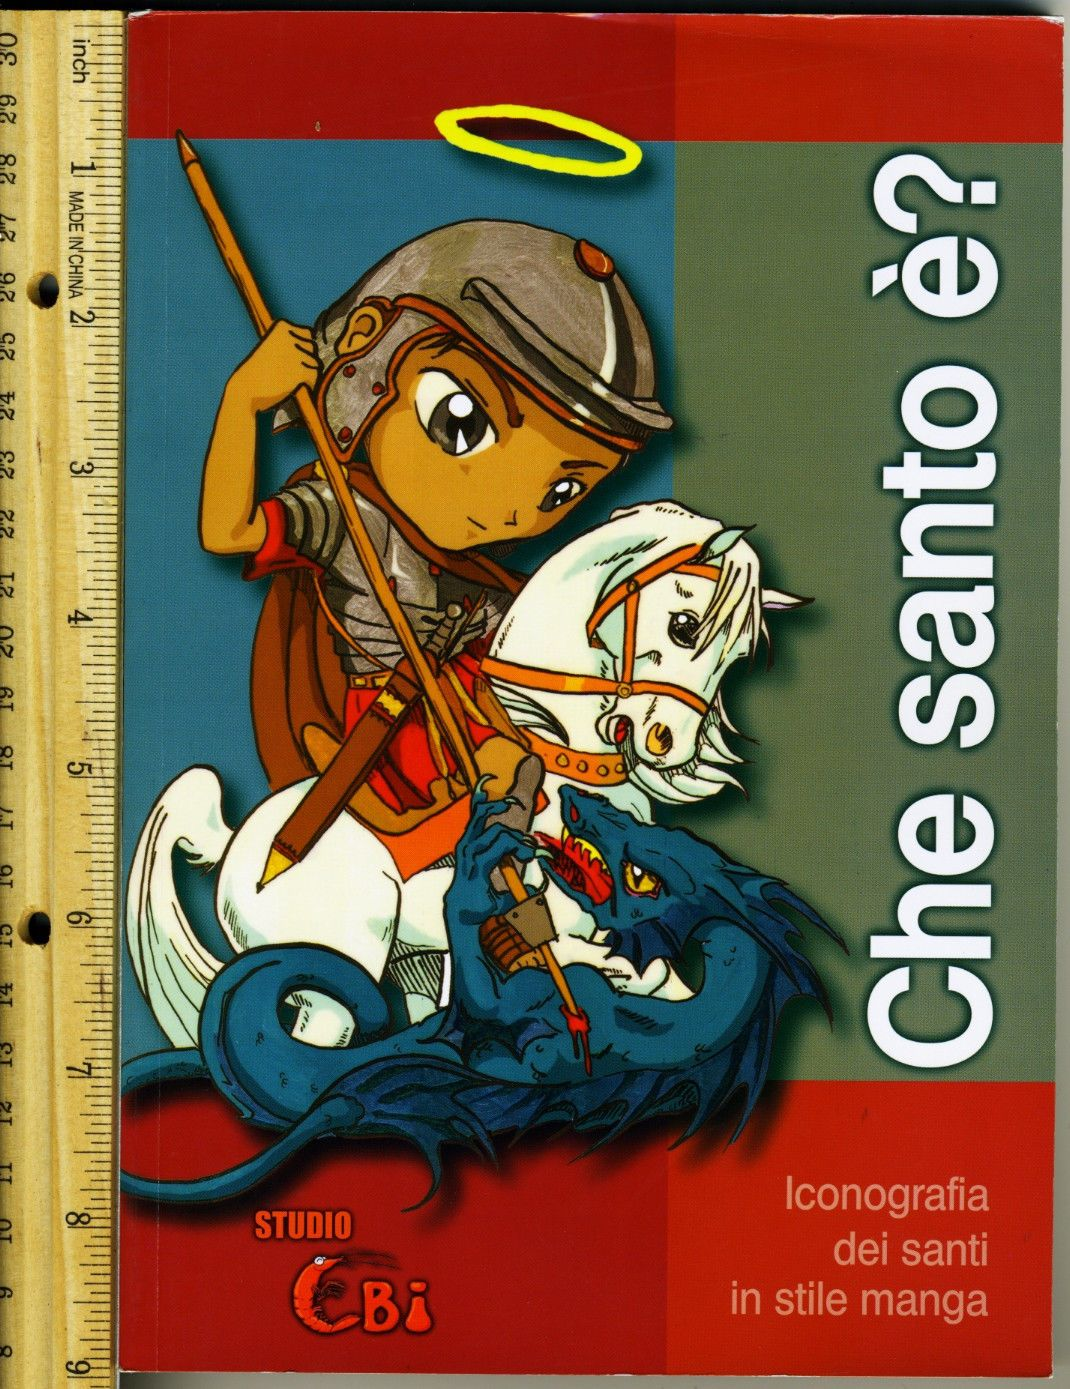 Beautiful book: Che santo è?  Iconography of the Saints in manga style